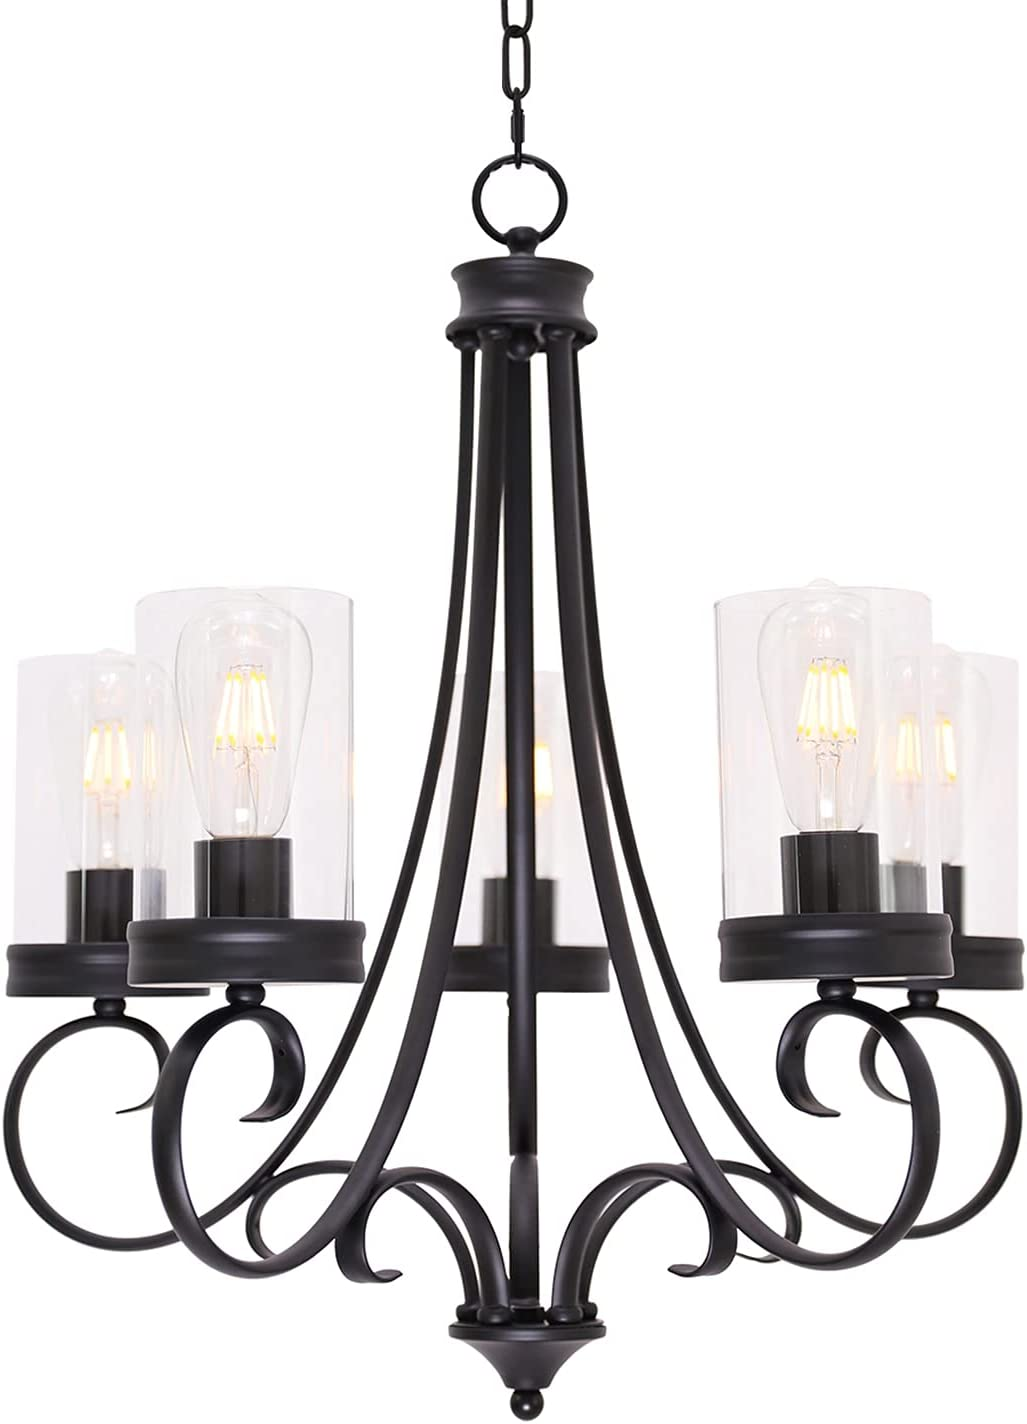 Lucidce Inexpensive Contemporary Chandelier 5 Fixt Max 79% OFF Pendant Black Light